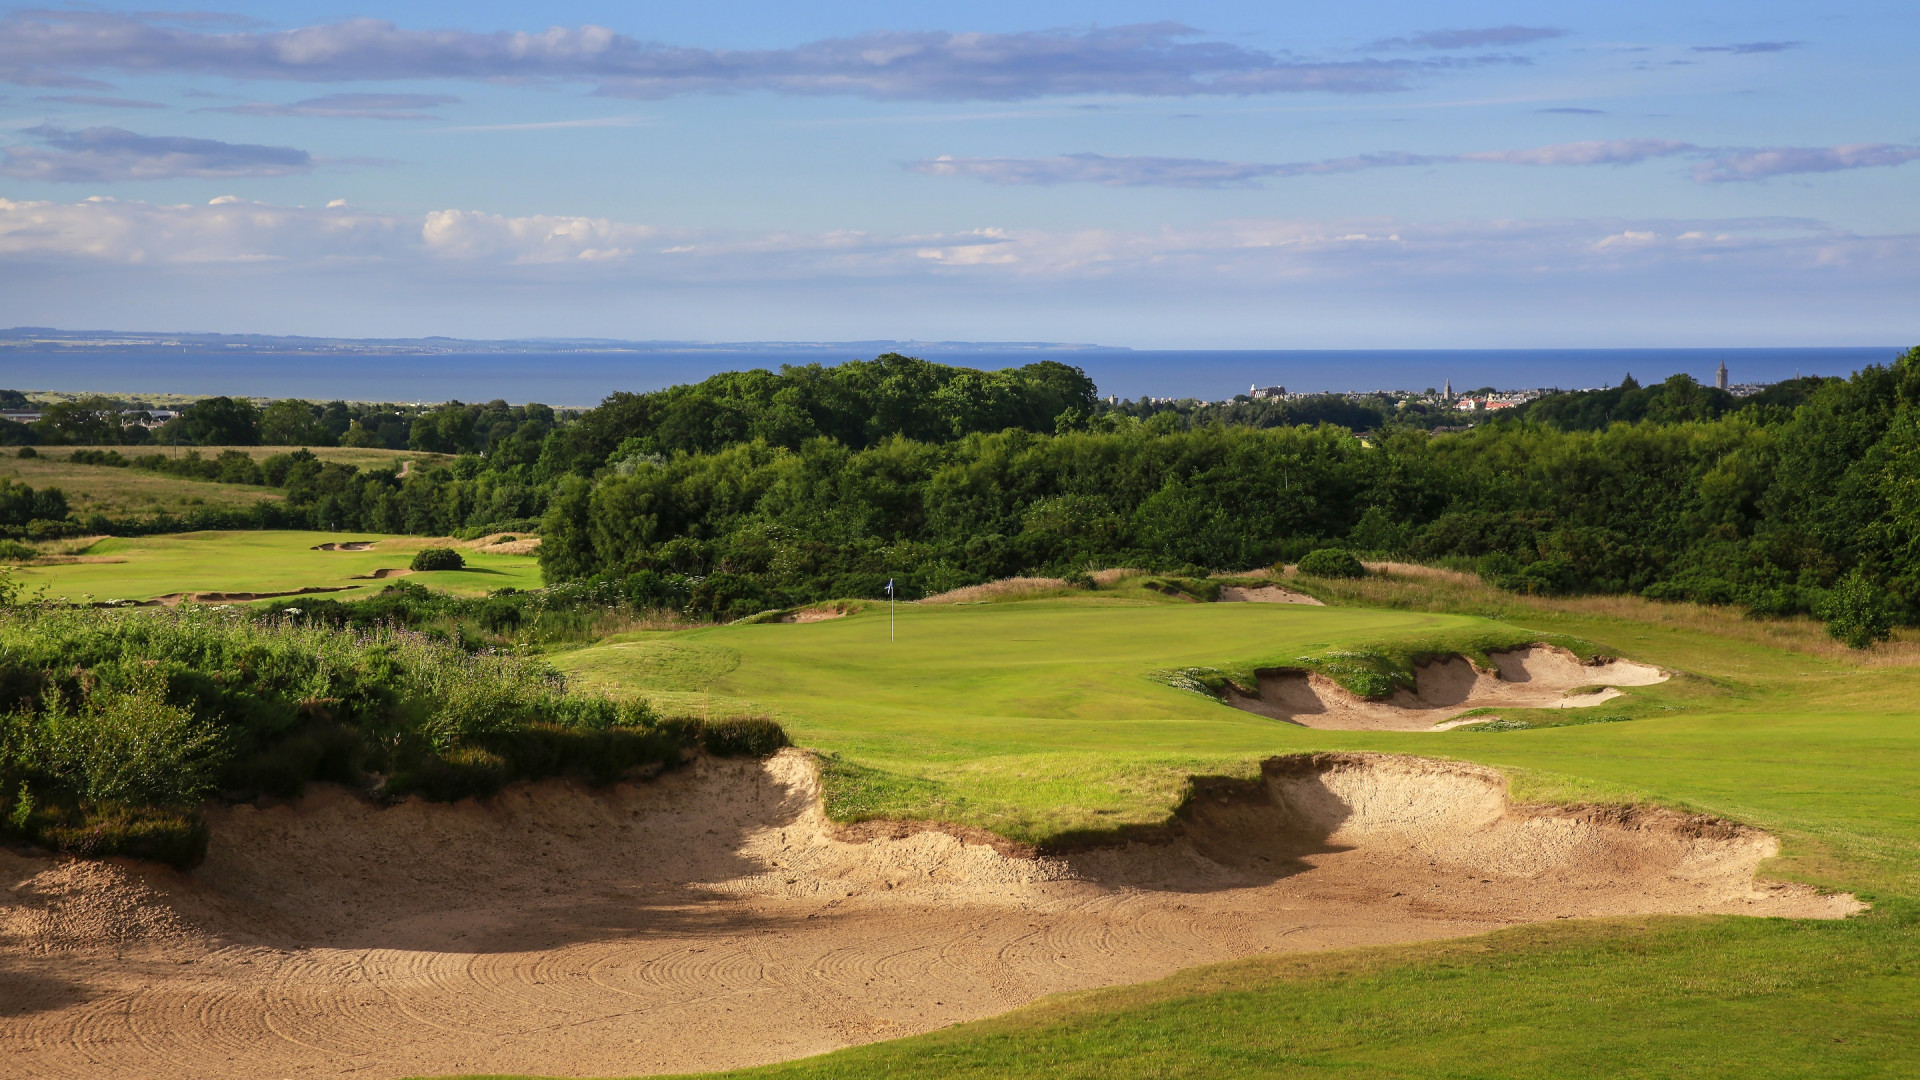 The Duke's Course, St Andrews golf